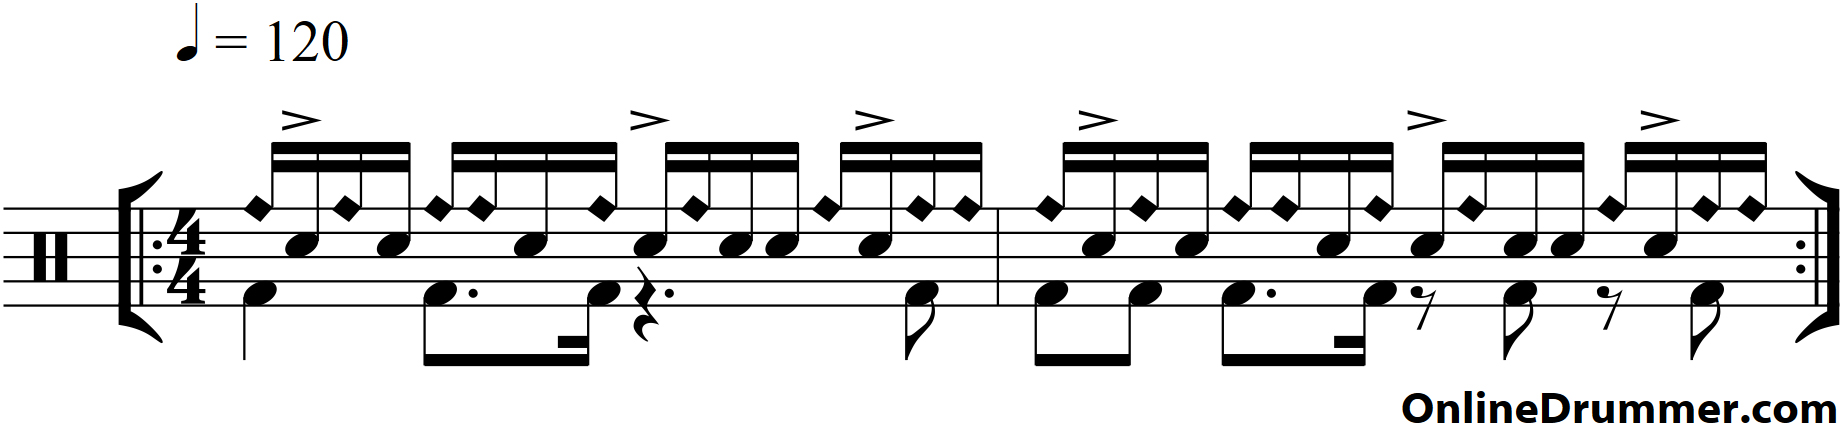 Blended Paradiddle Groove